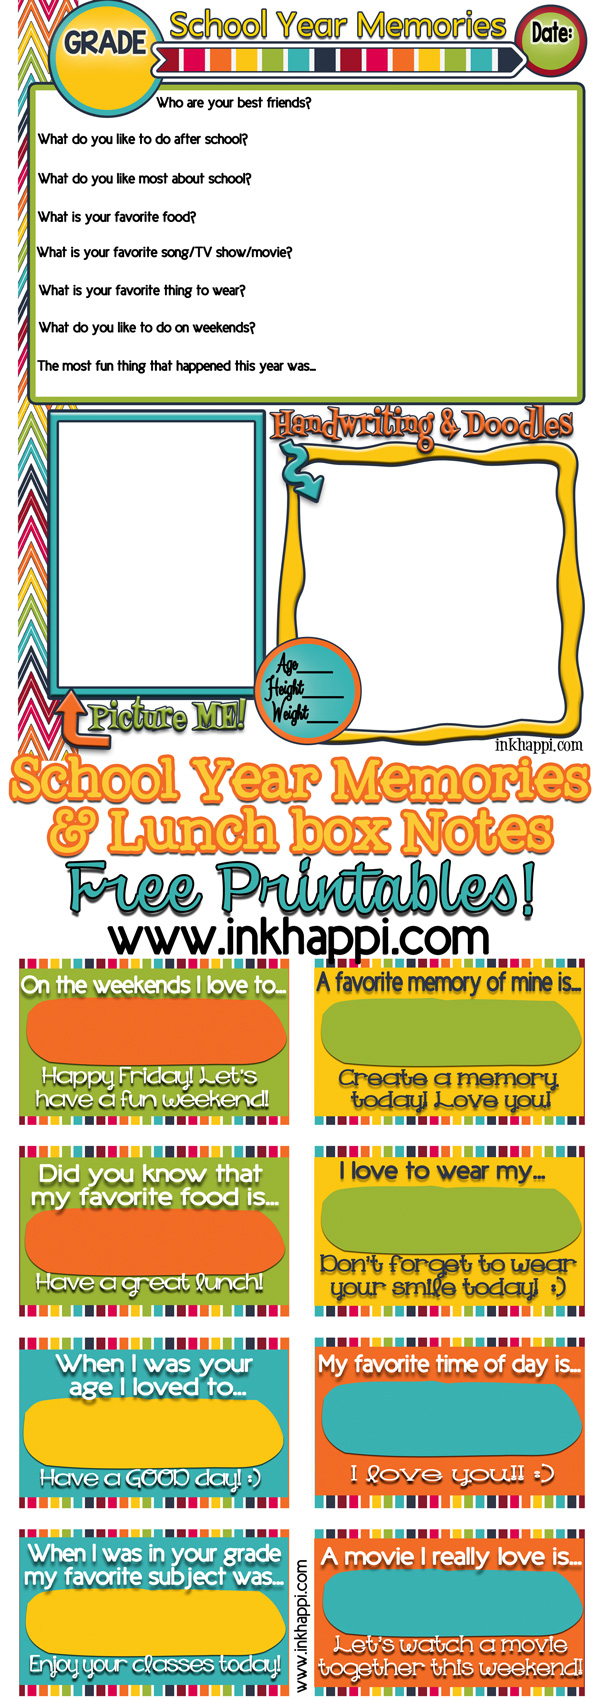 Sharing memories! School year memories and lunchbox notes. Free printables from inkhappi.com